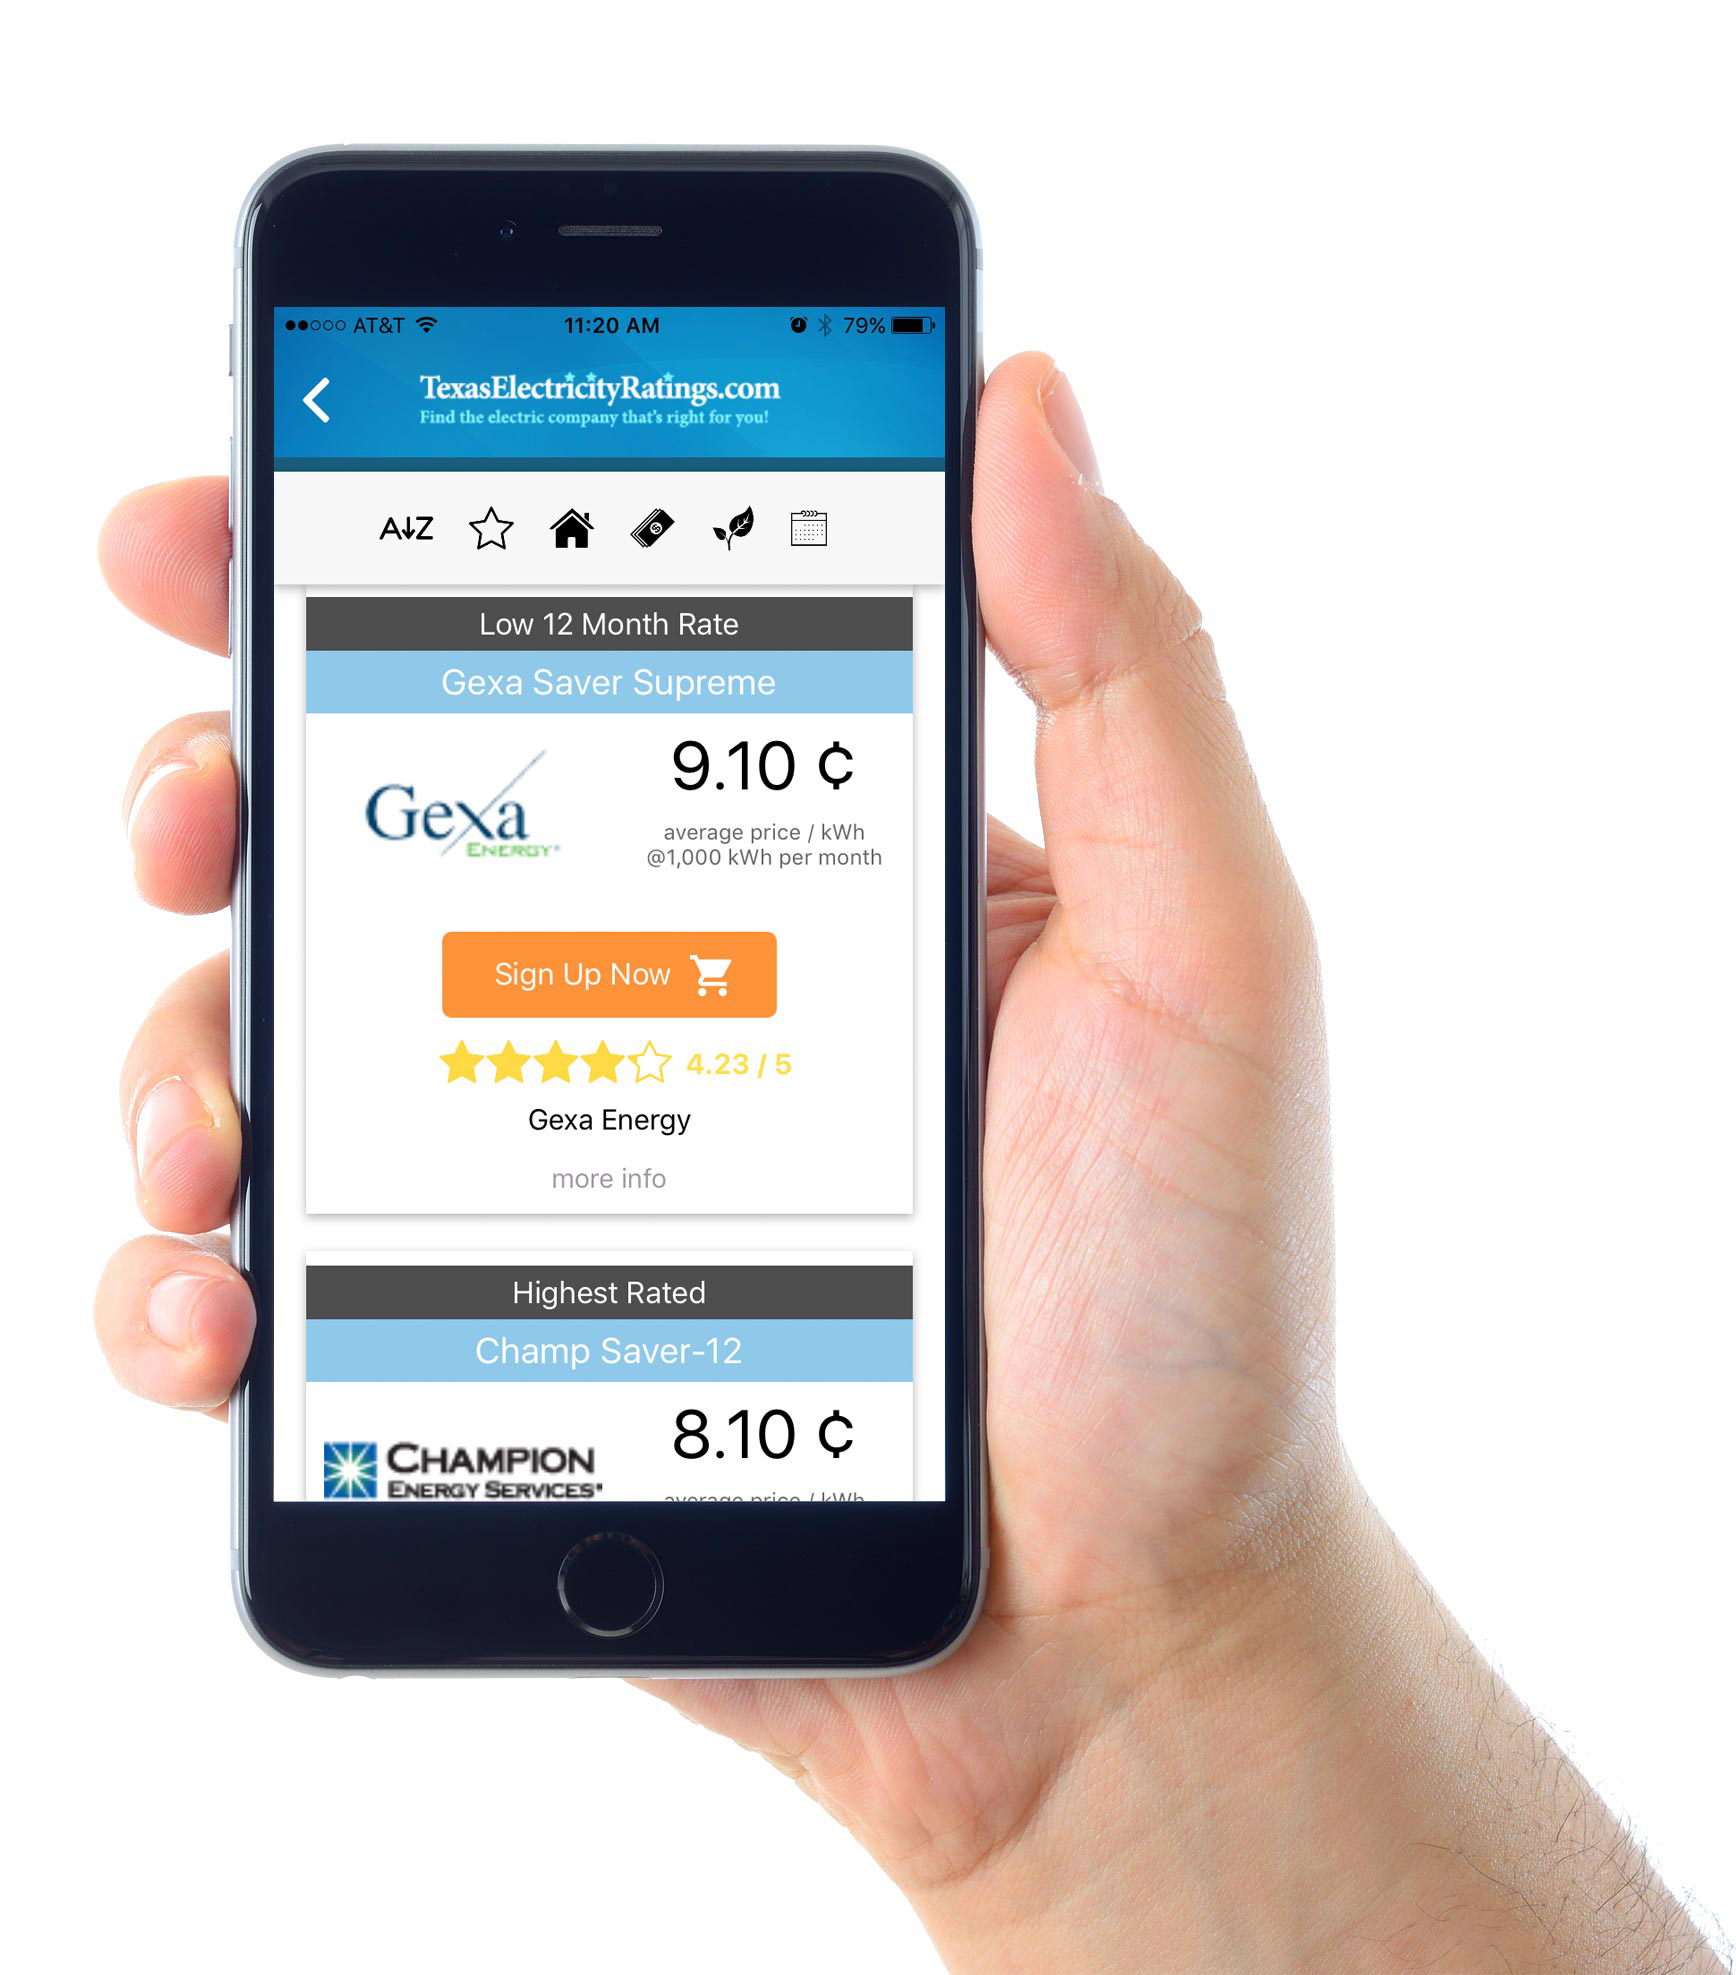 Texas Electricity Ratings Launches Mobile Shopping Apps ...